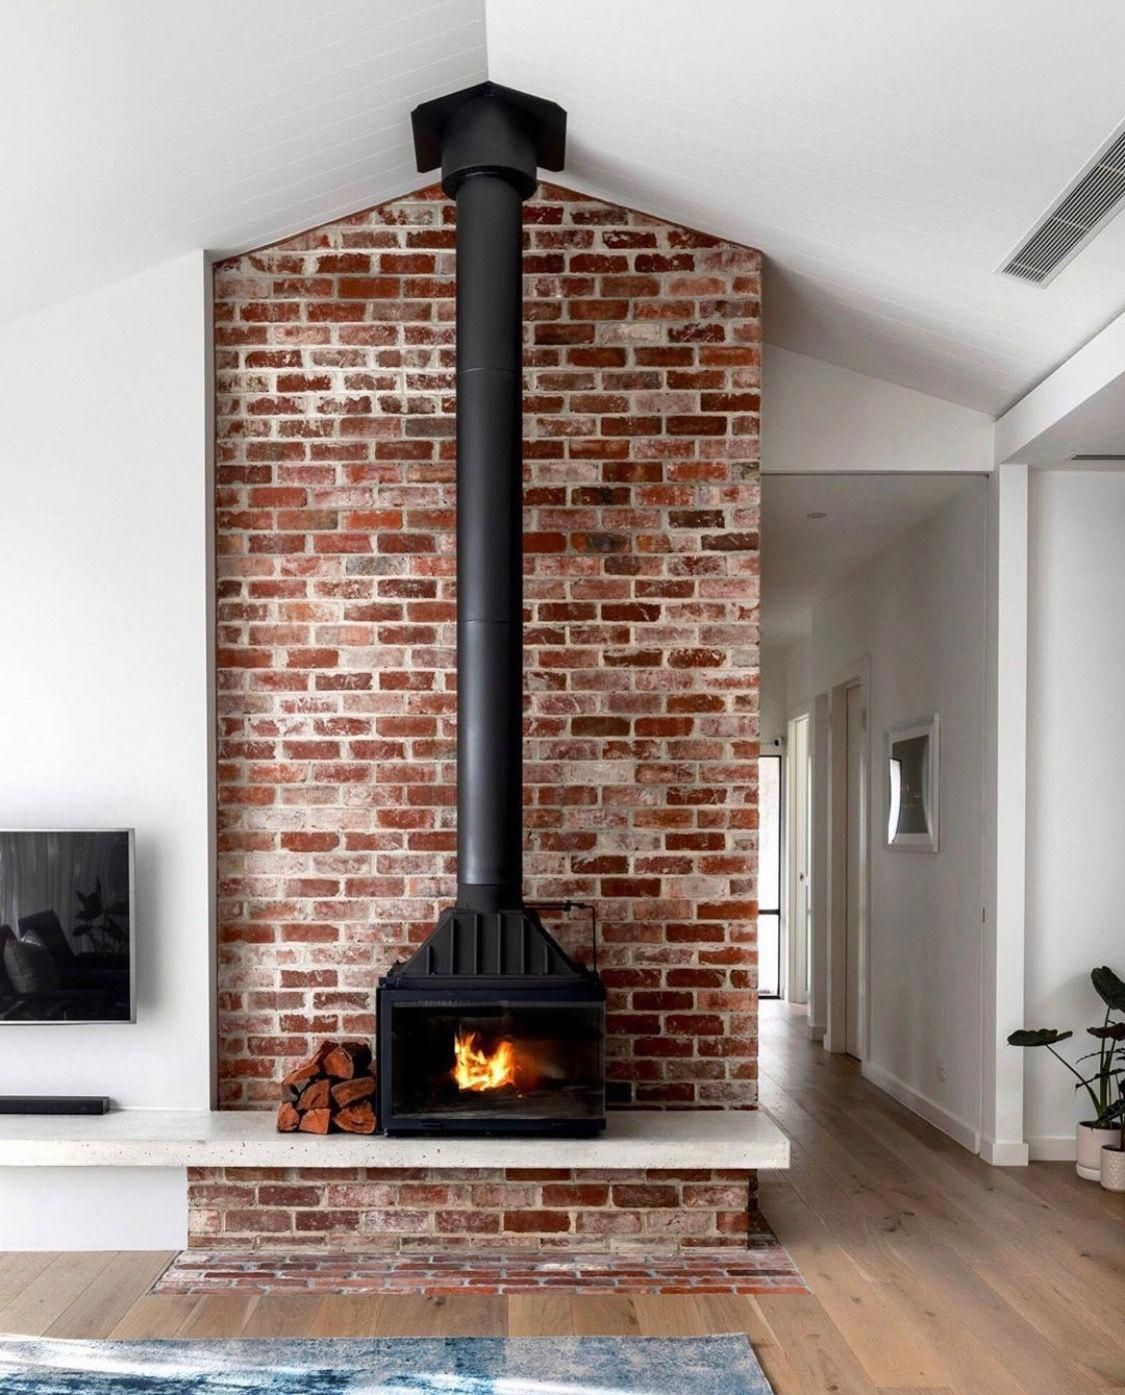 Secondary Lighting How To Choose It And Install It In 2020 Home Fireplace Edwardian House Fireplace Design